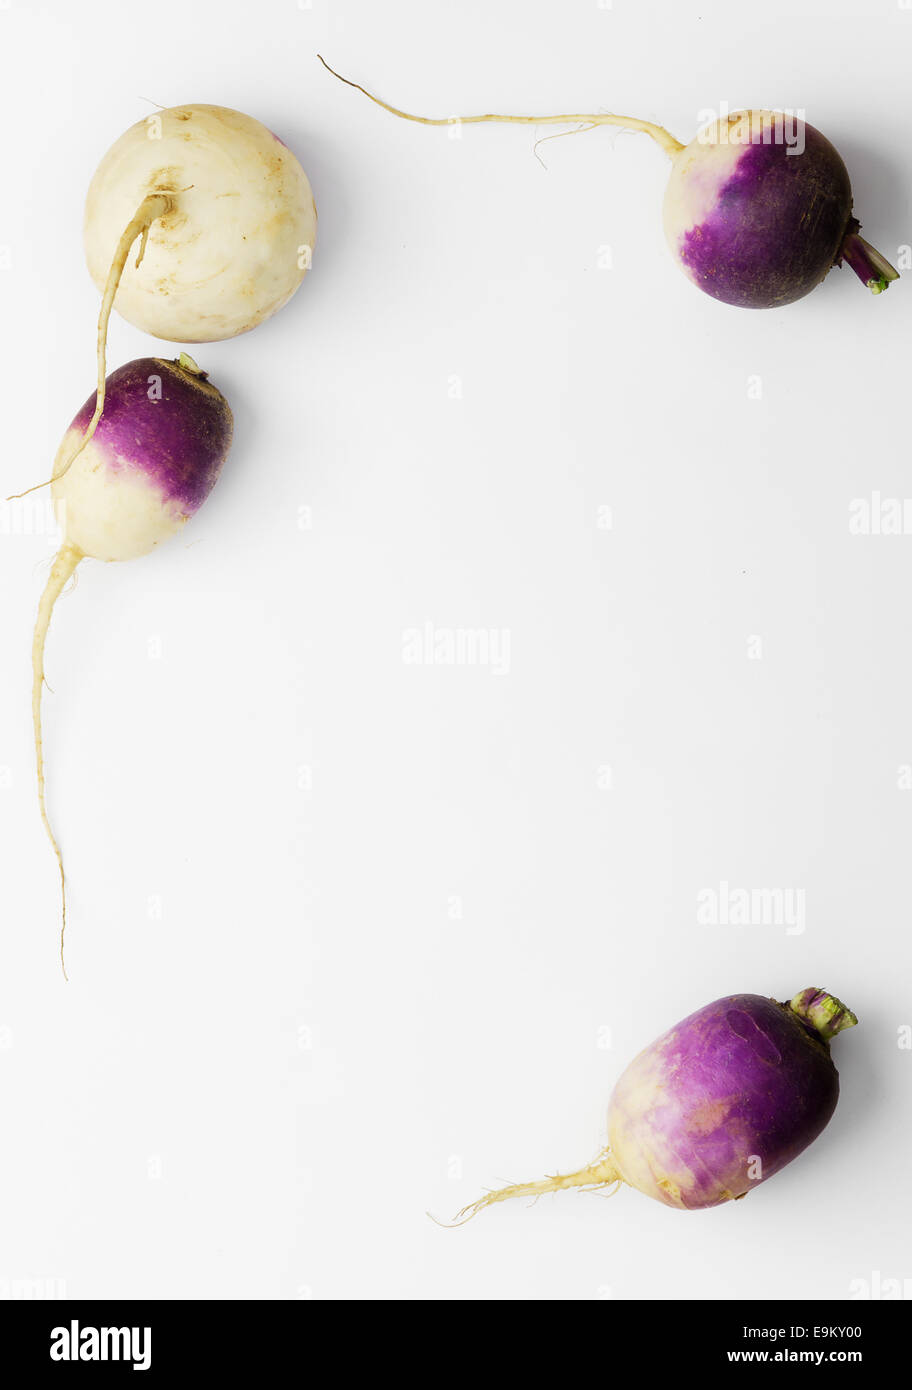 Fresh turnip background with copy space (negative space) - Stock Image